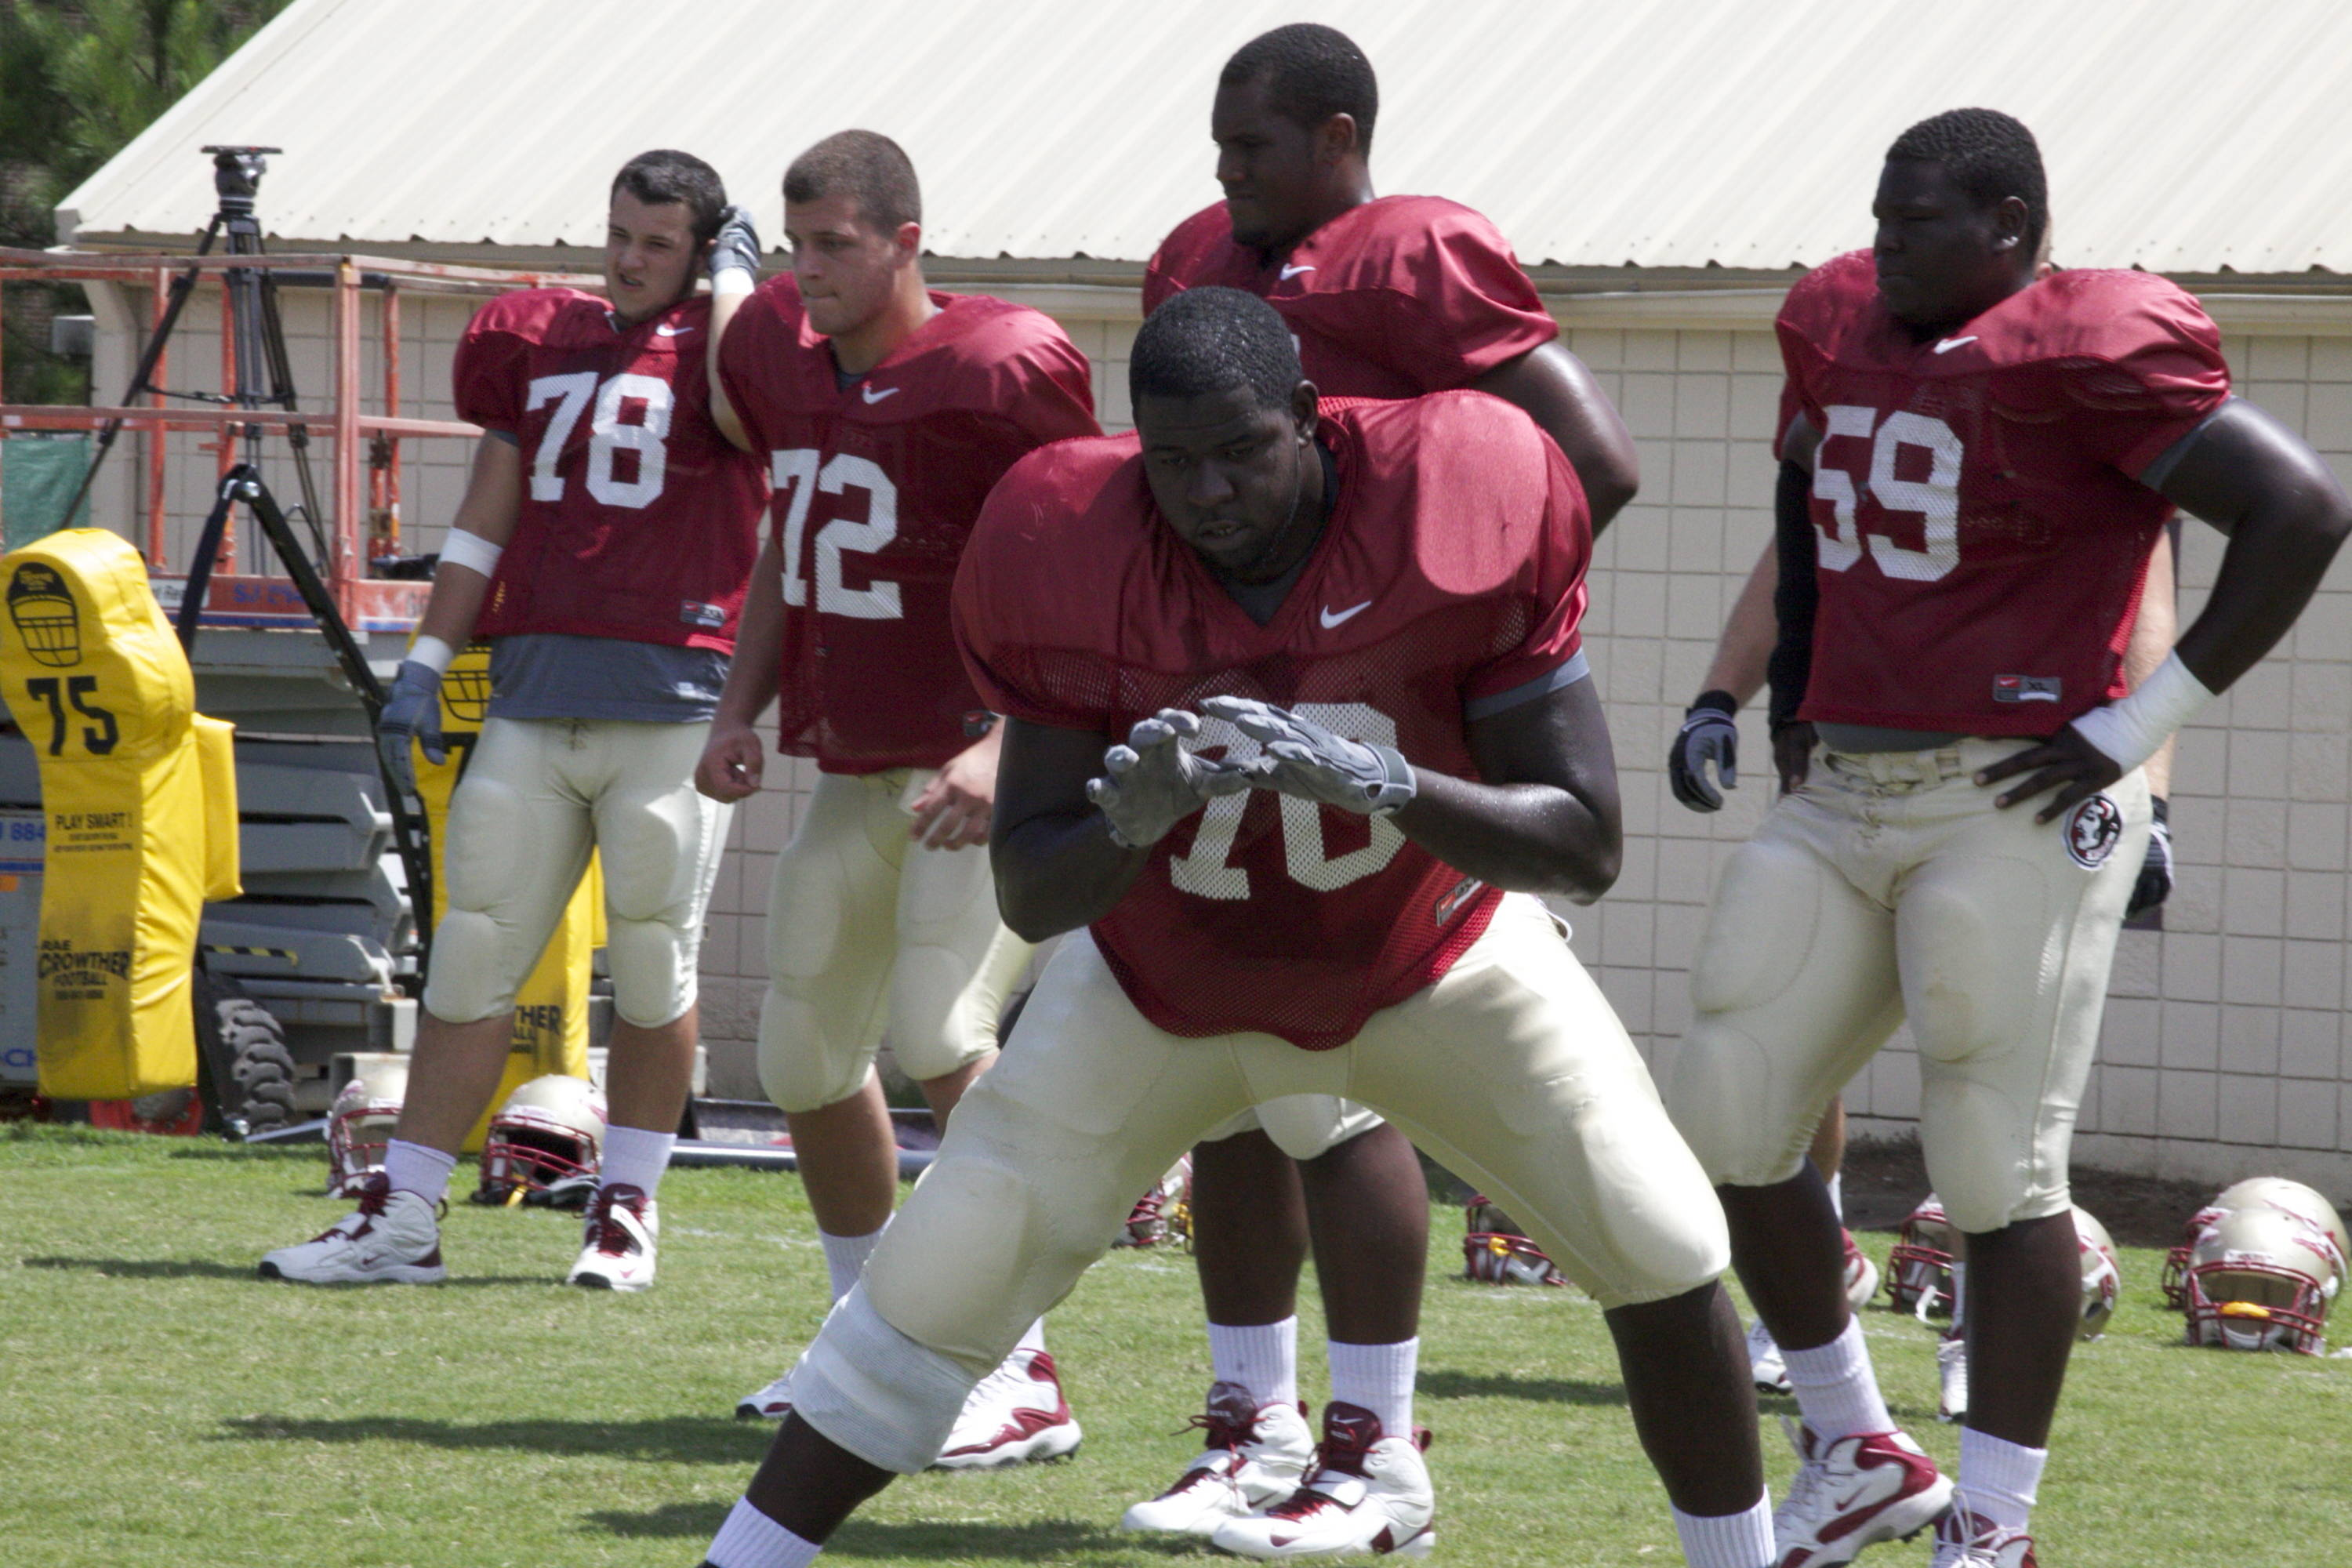 Antwane Greenlee (70) in a blocking drill